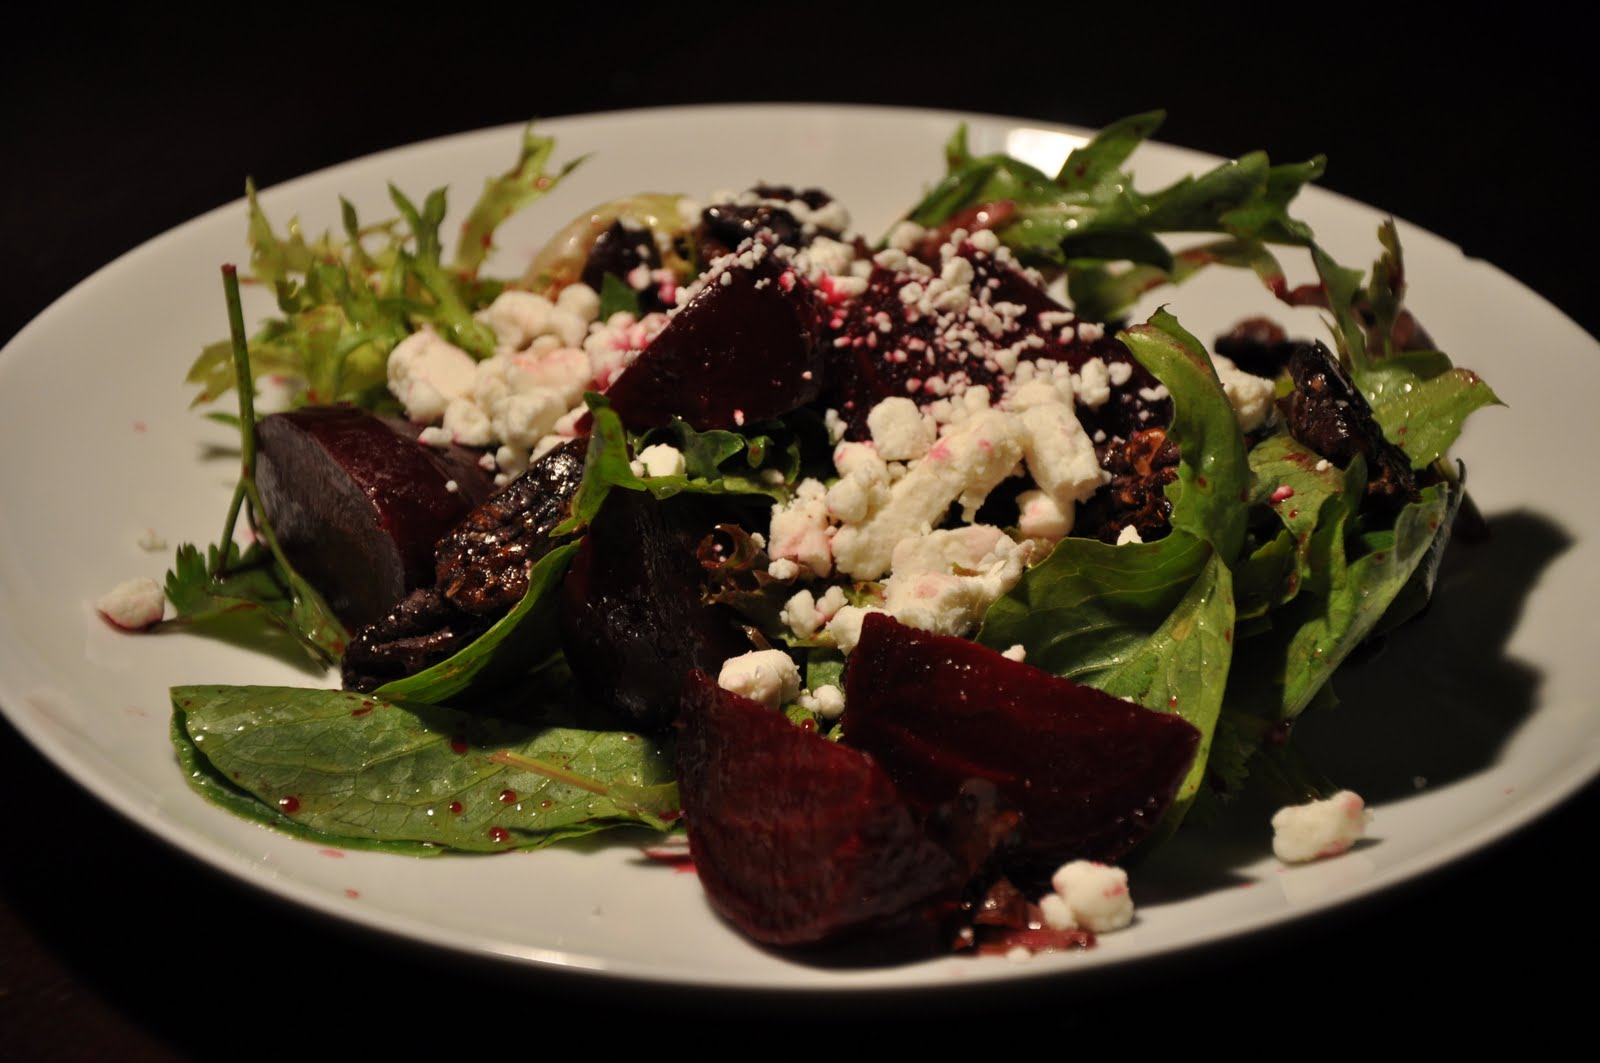 ... of Rice: Salad with Roasted Beets, Goat Cheese and Candied Pecans